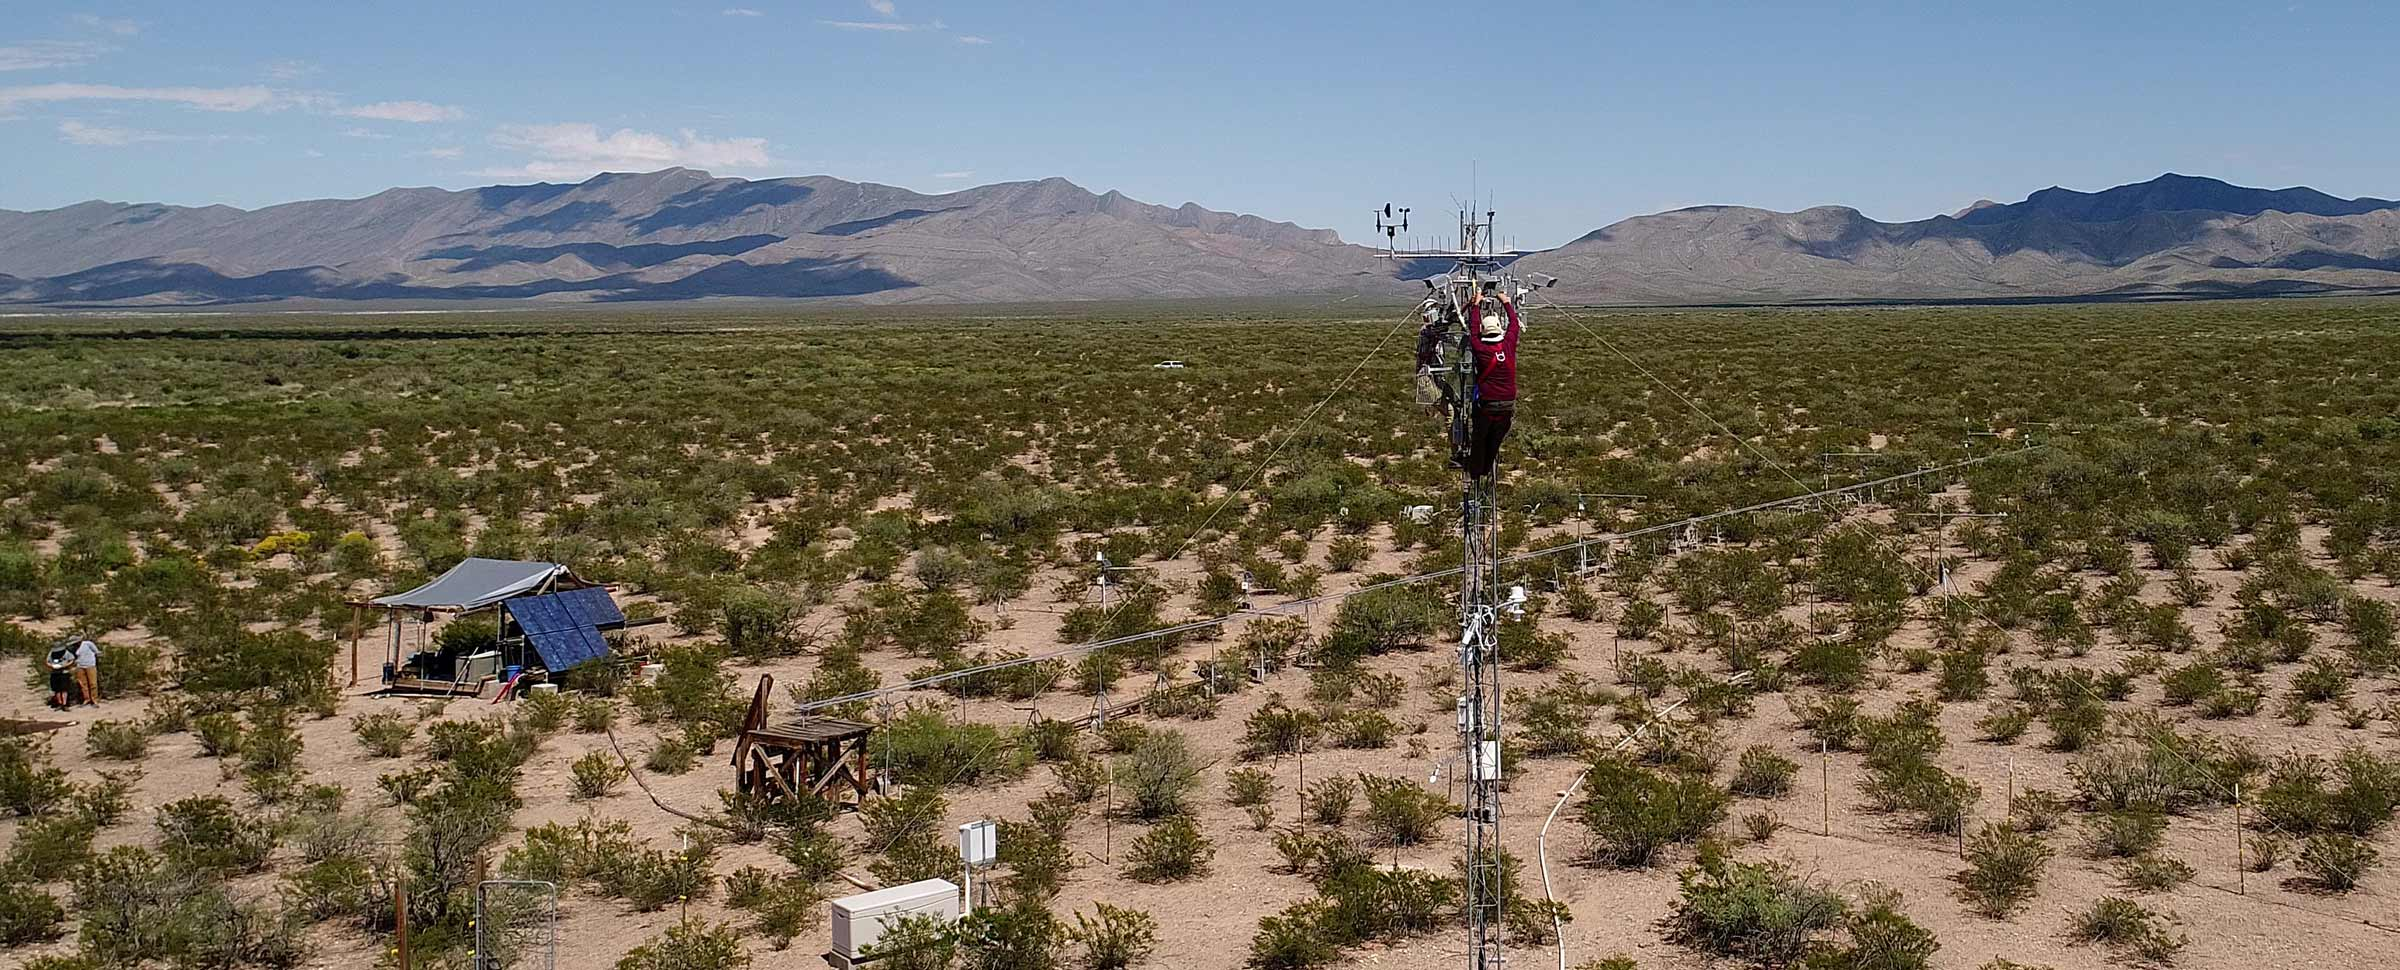 NSF Awards UTEP $5 Million to Lead Study of Earth's Surface in Drylands